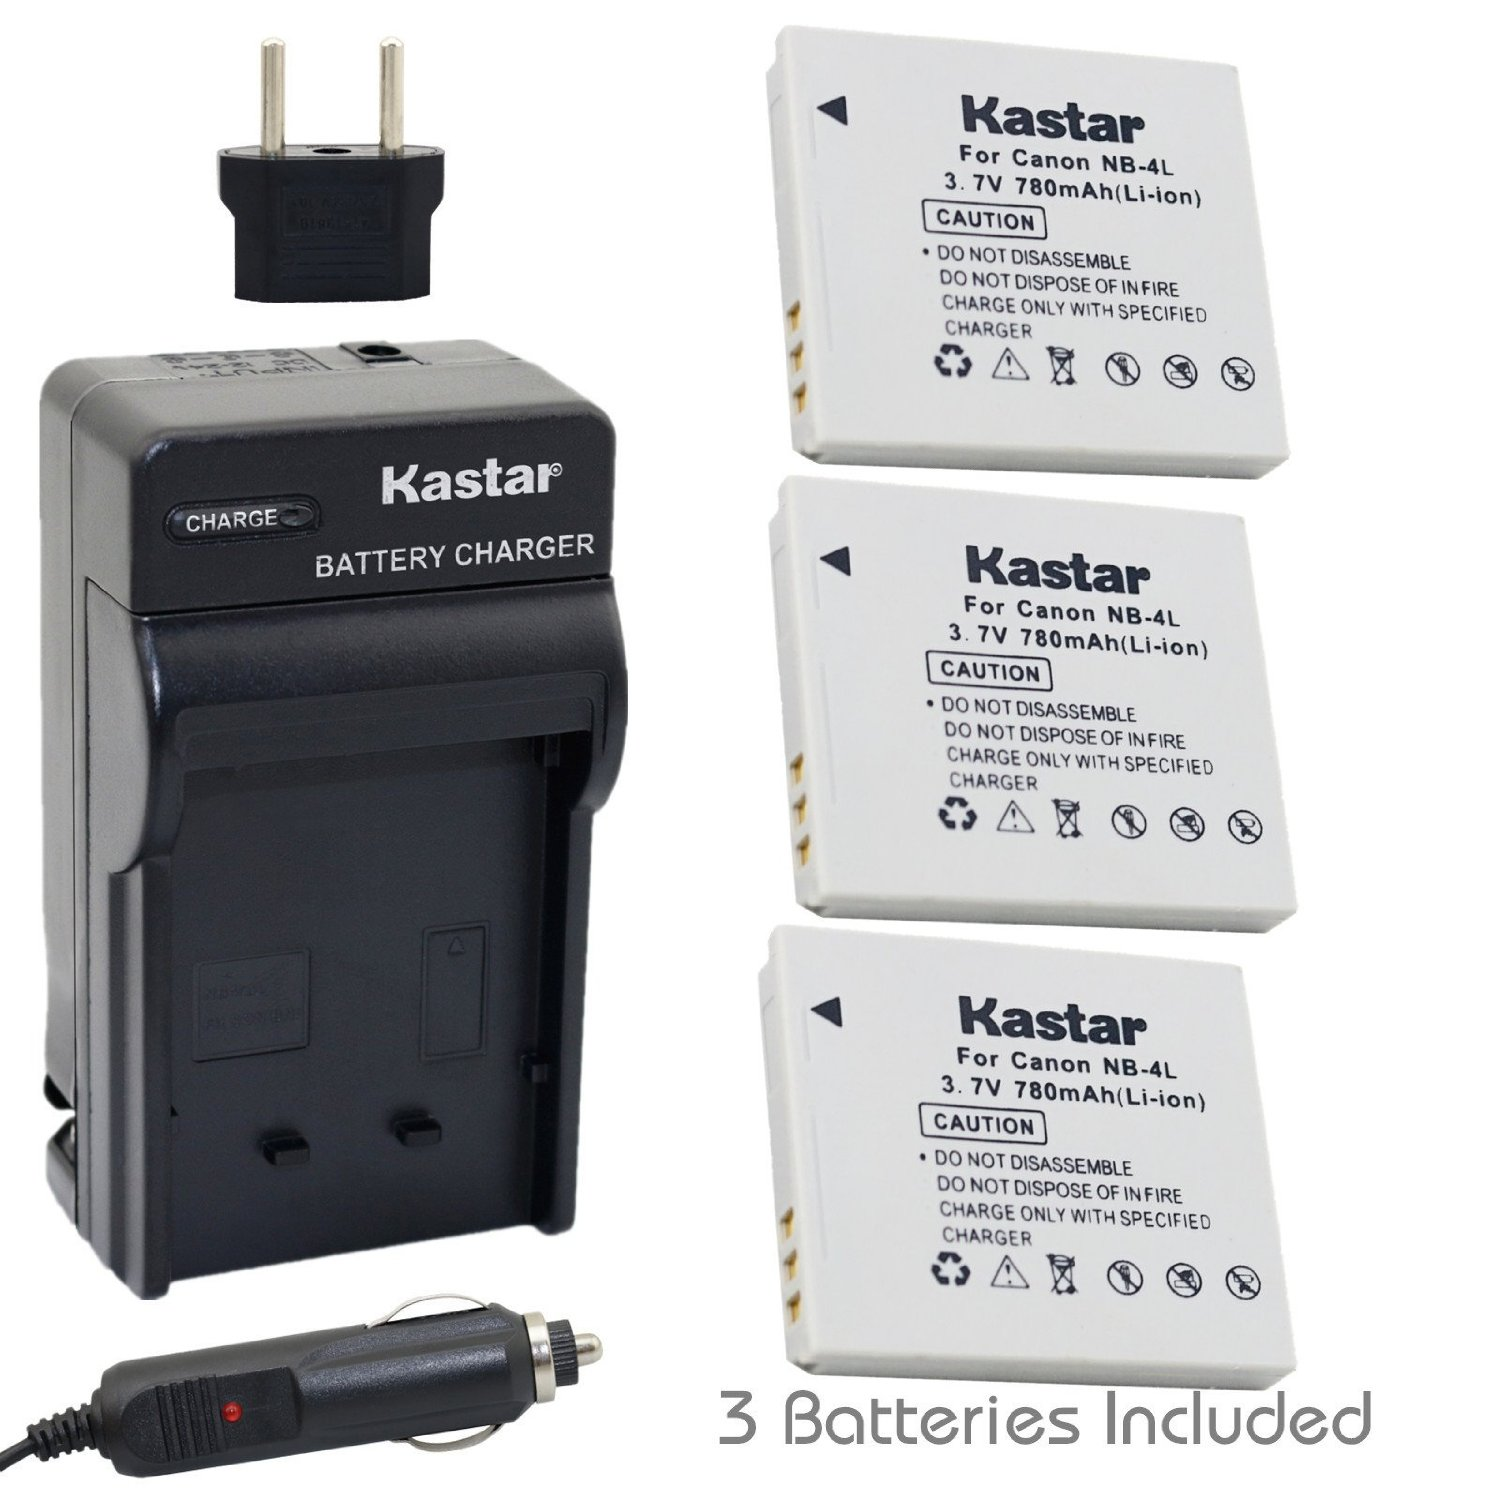 Amazon.com : Kastar Battery (3-Pack) and Charger Kit for Canon NB-4L, CB-2LV work with Canon PowerShot SD40, SD30, SD200, SD300, SD400, SD430, SD450, SD600, SD630, SD750, SD780 IS, SD940 IS, SD960 IS, SD1000, SD1100 IS, SD1100 IS, SD1400 IS, TX1, ELPH 100 HS, ELPH 300 HS, ELPH 310 HS, ELPH 330 HS, V